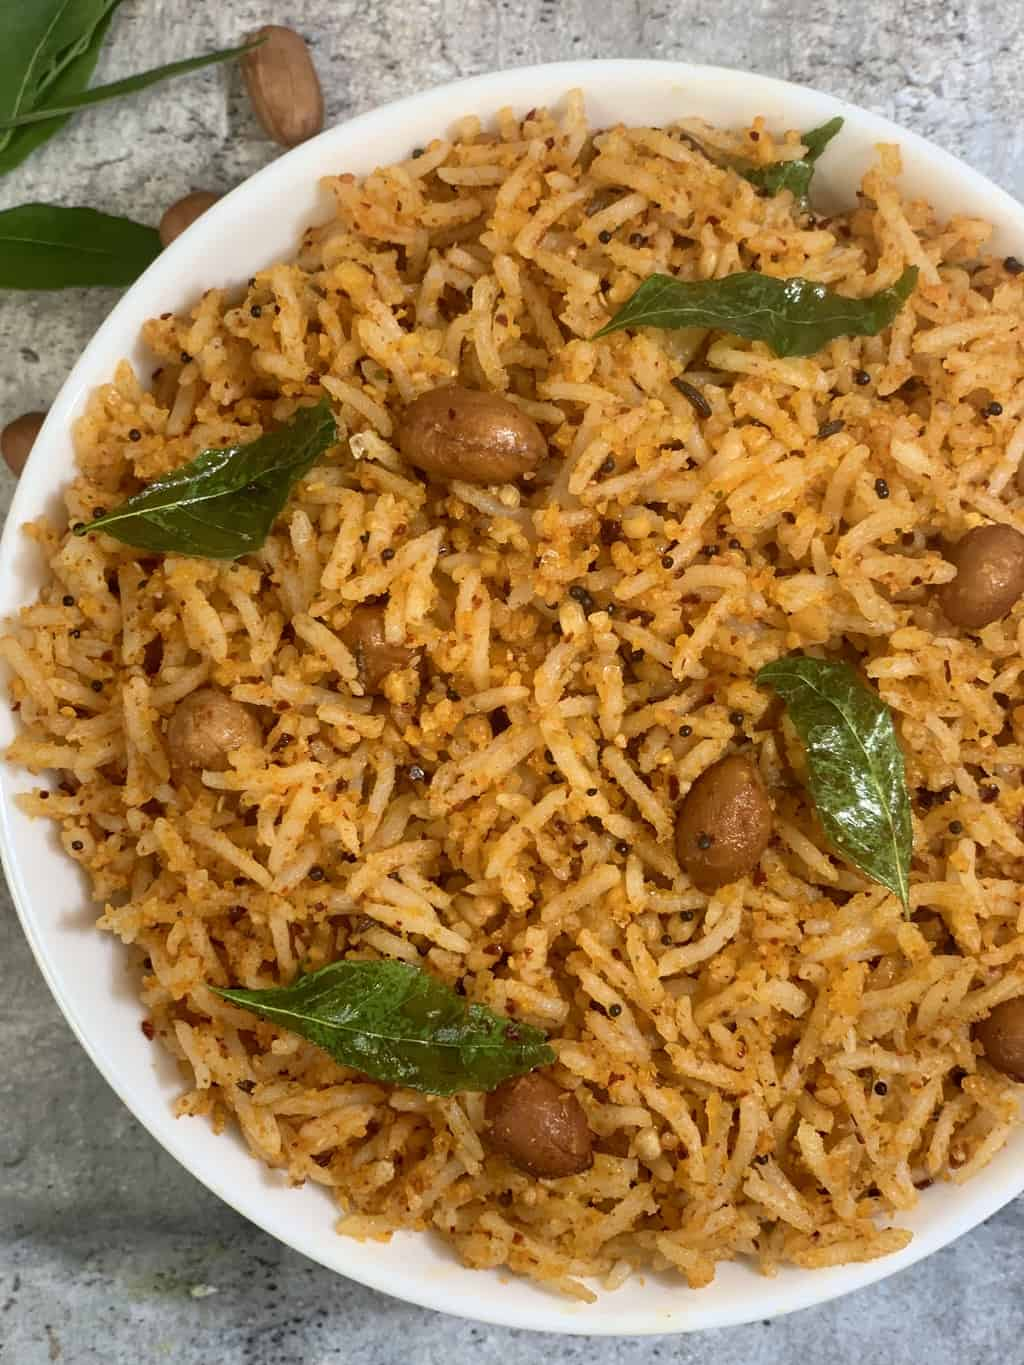 Peanut Rice Recipe is a delicious and flavorful south indian rice made with roasted peanut powder, lentil and spices